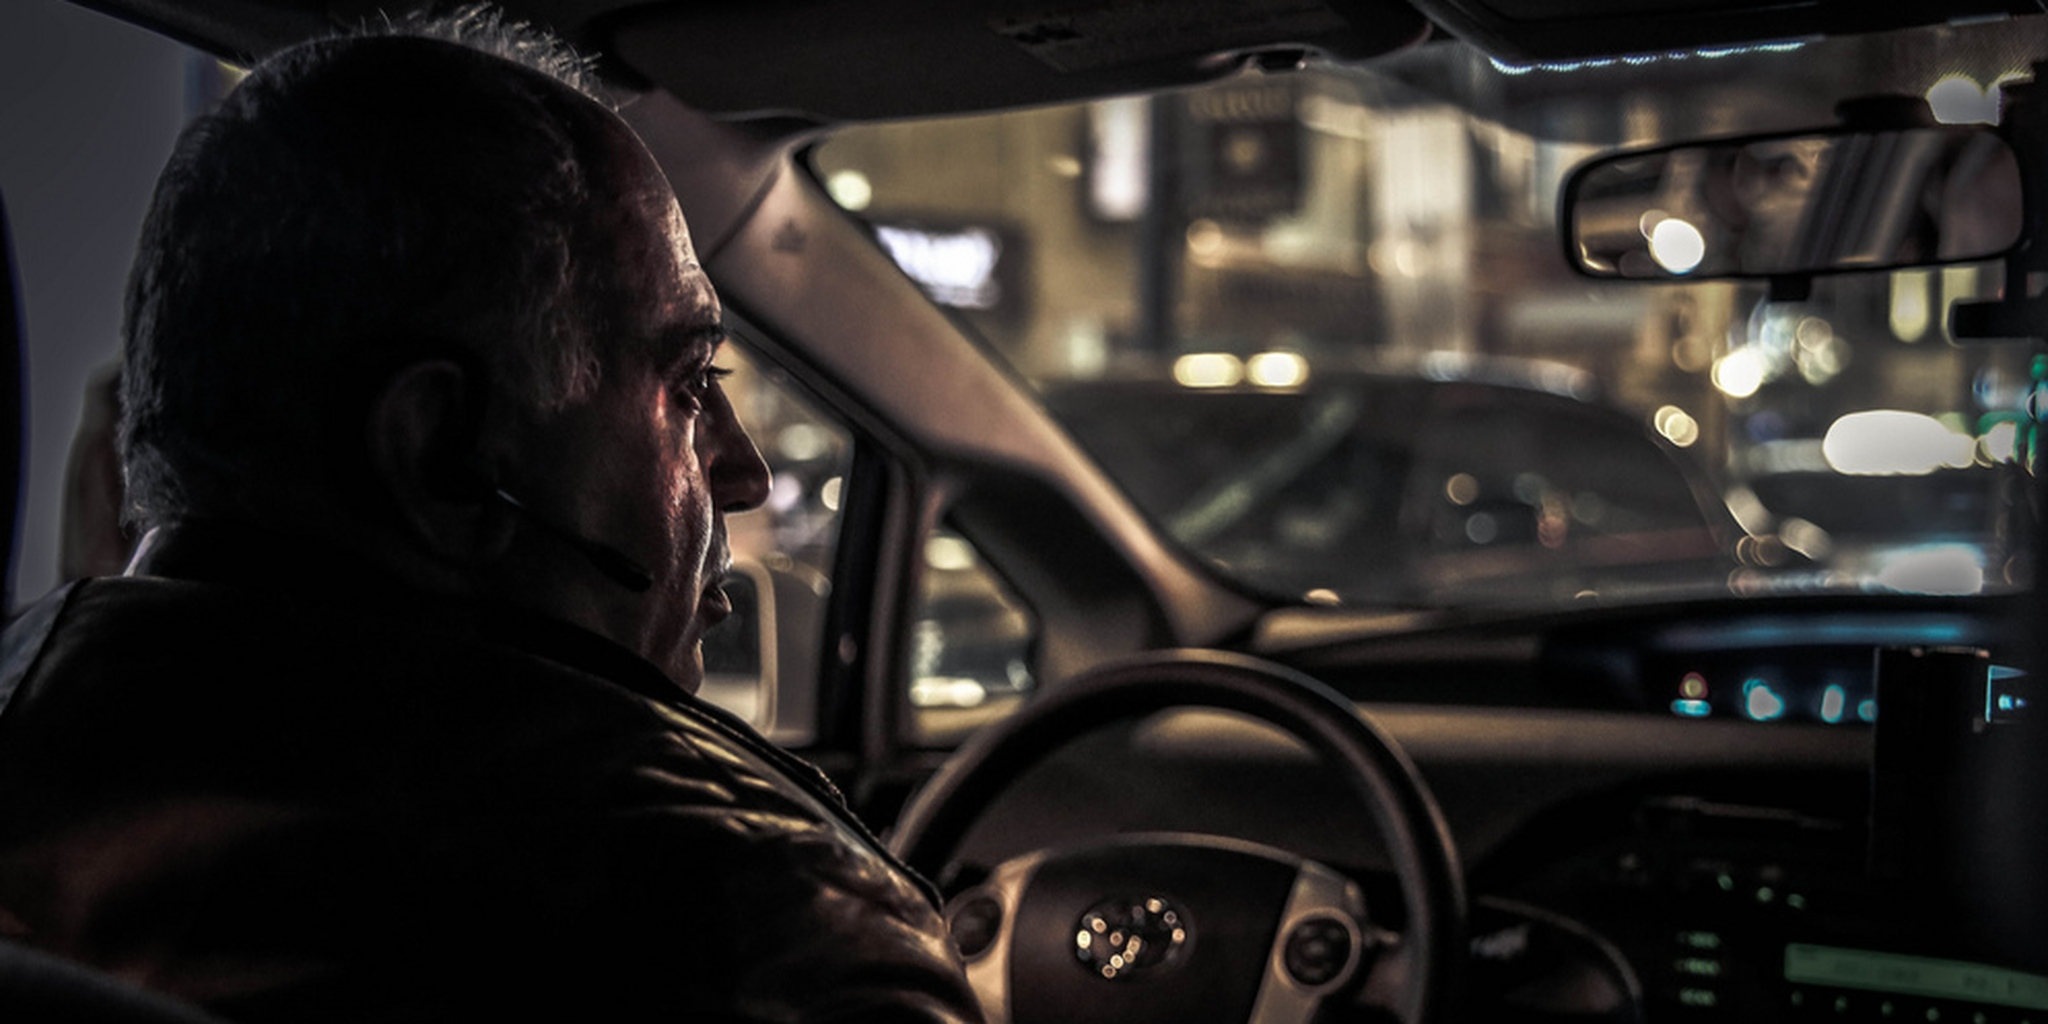 The trick Uber drivers use to boost their salaries